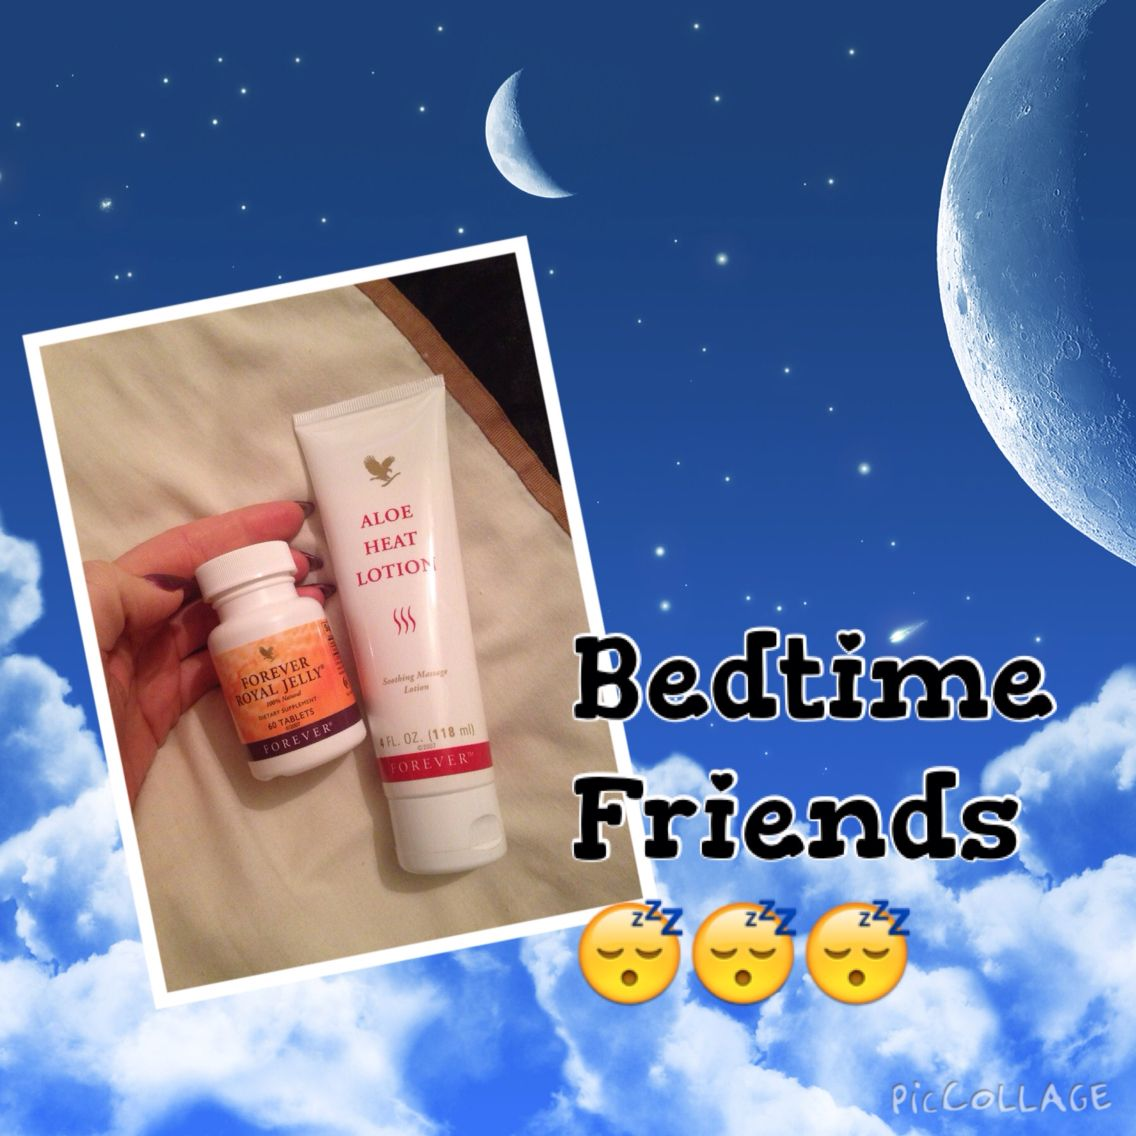 Bedtime friends #sleep #insomnia #natural #heatlotion #royaljelly